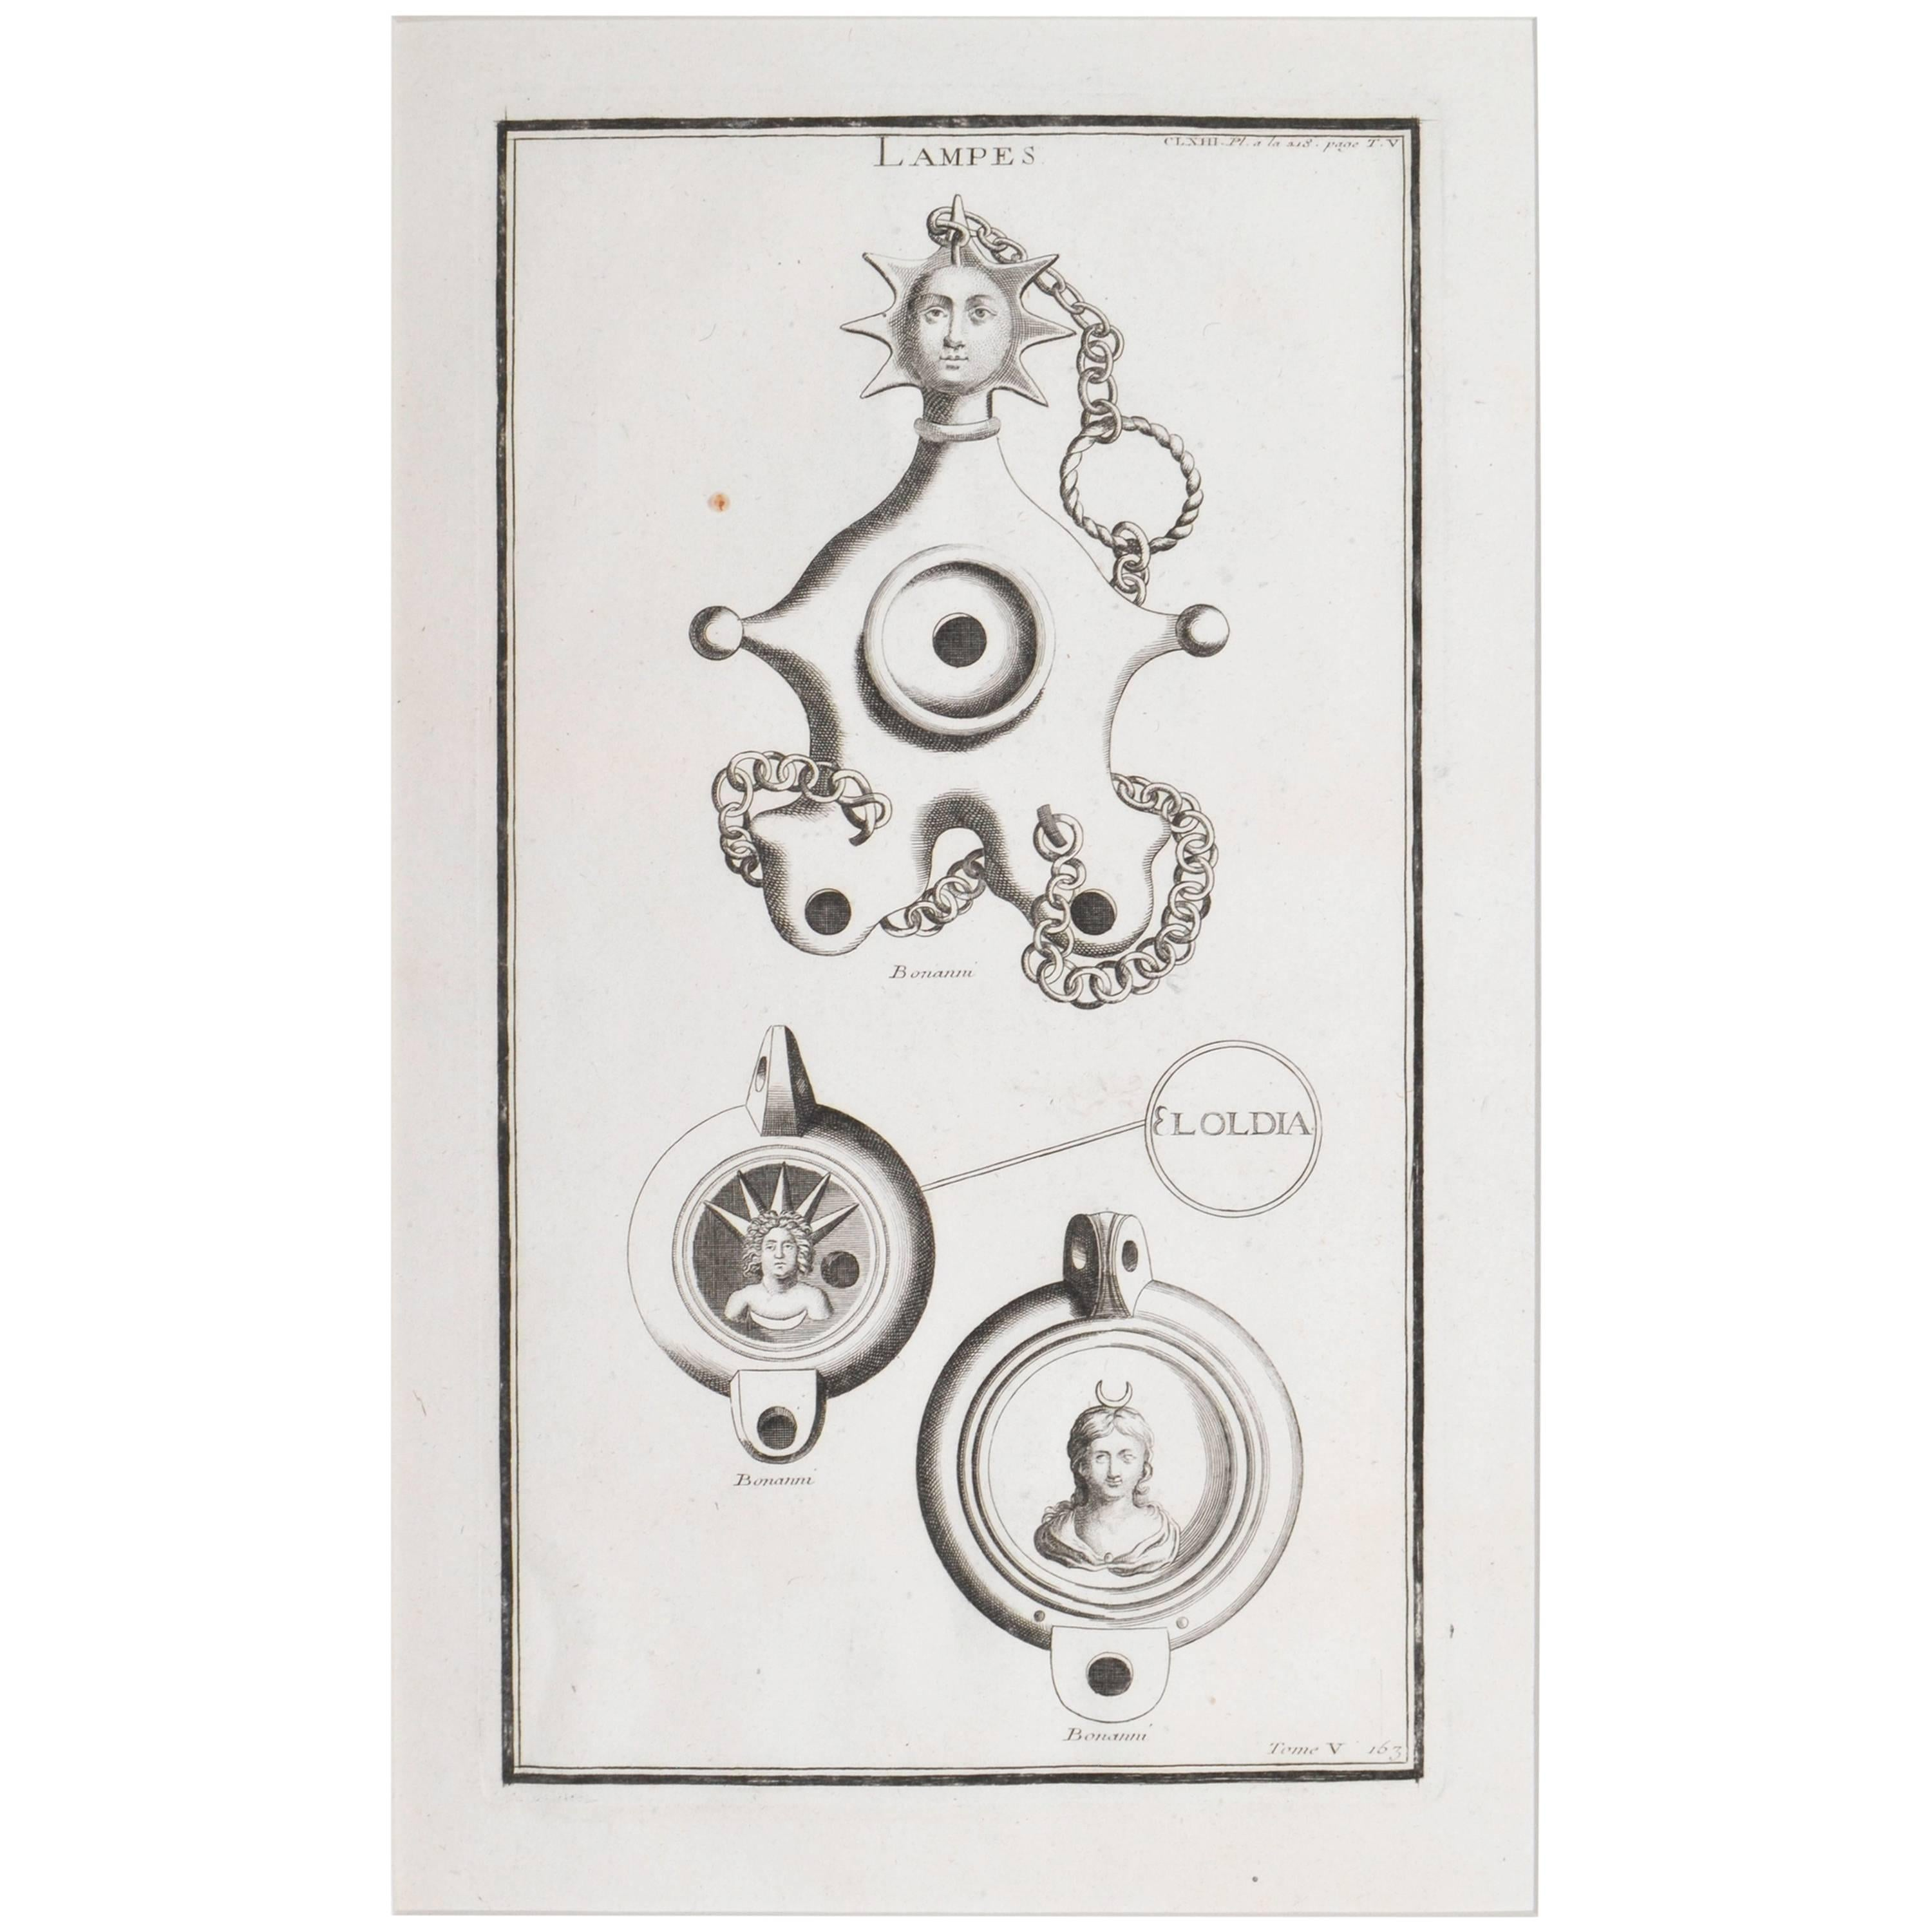 Copper Engraving Featuring Oil Lamps from the Roman Empire